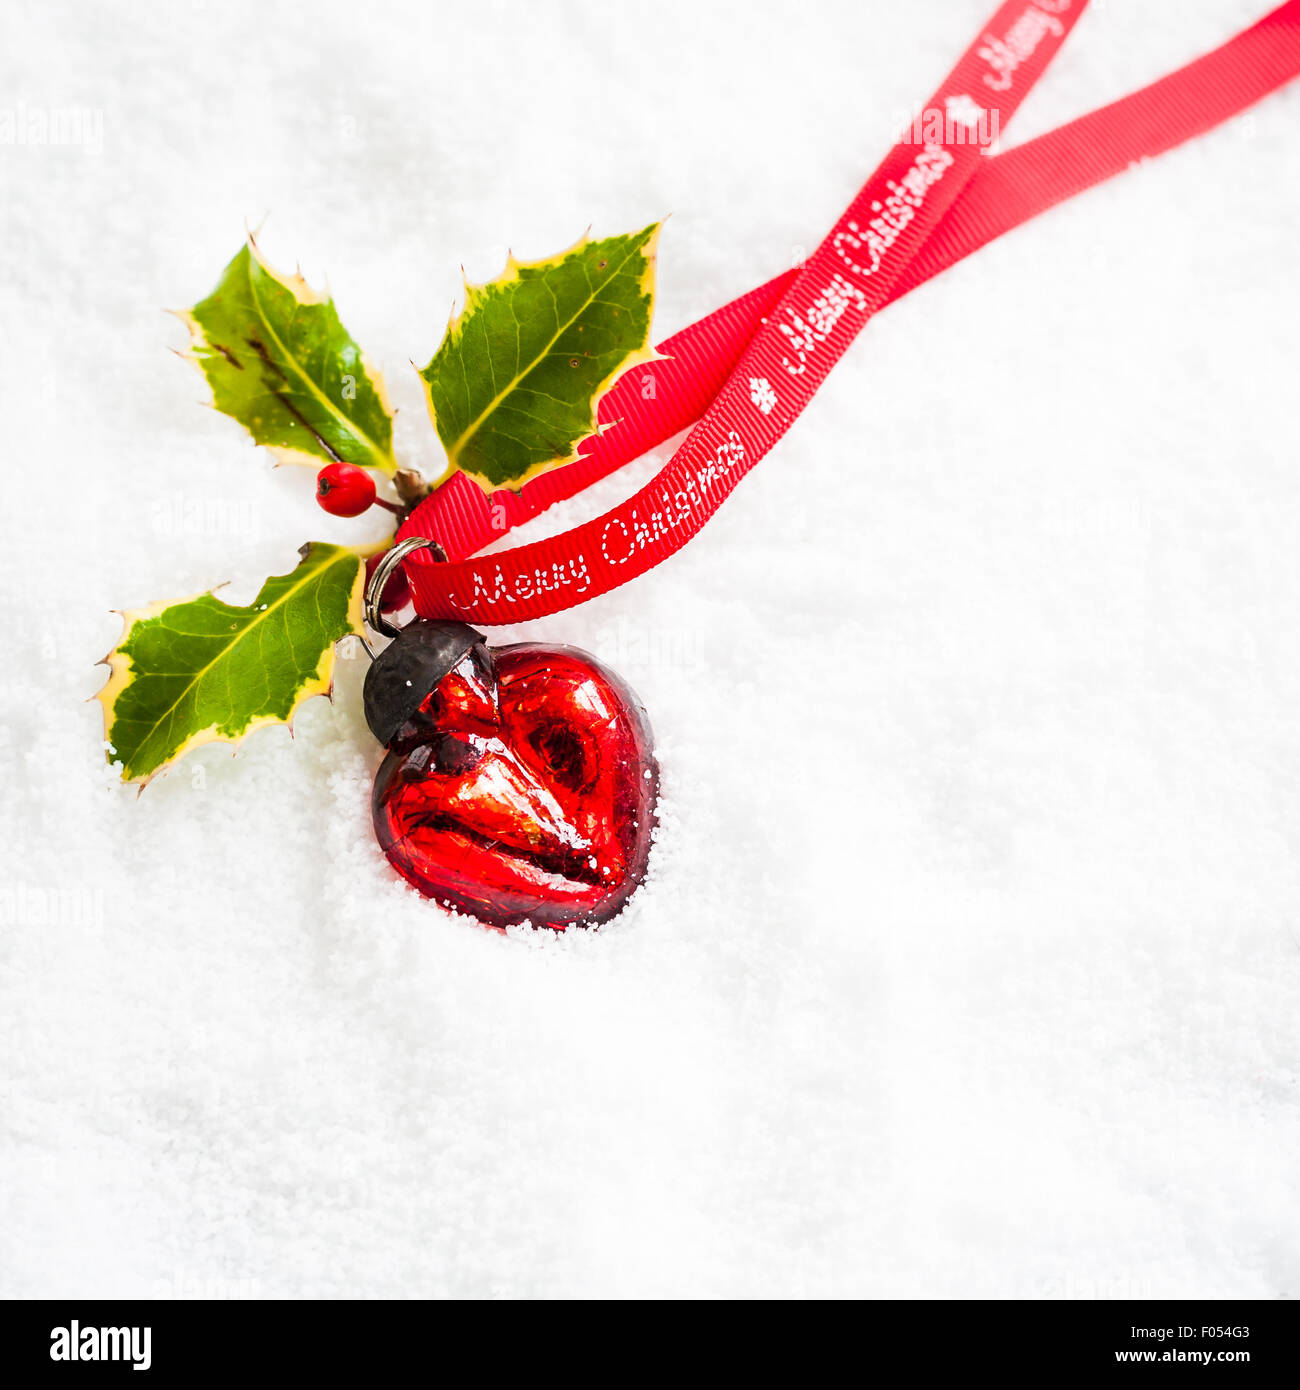 heart shaped red bauble with holly and Merry Christmas ribbon on snow - Stock Image